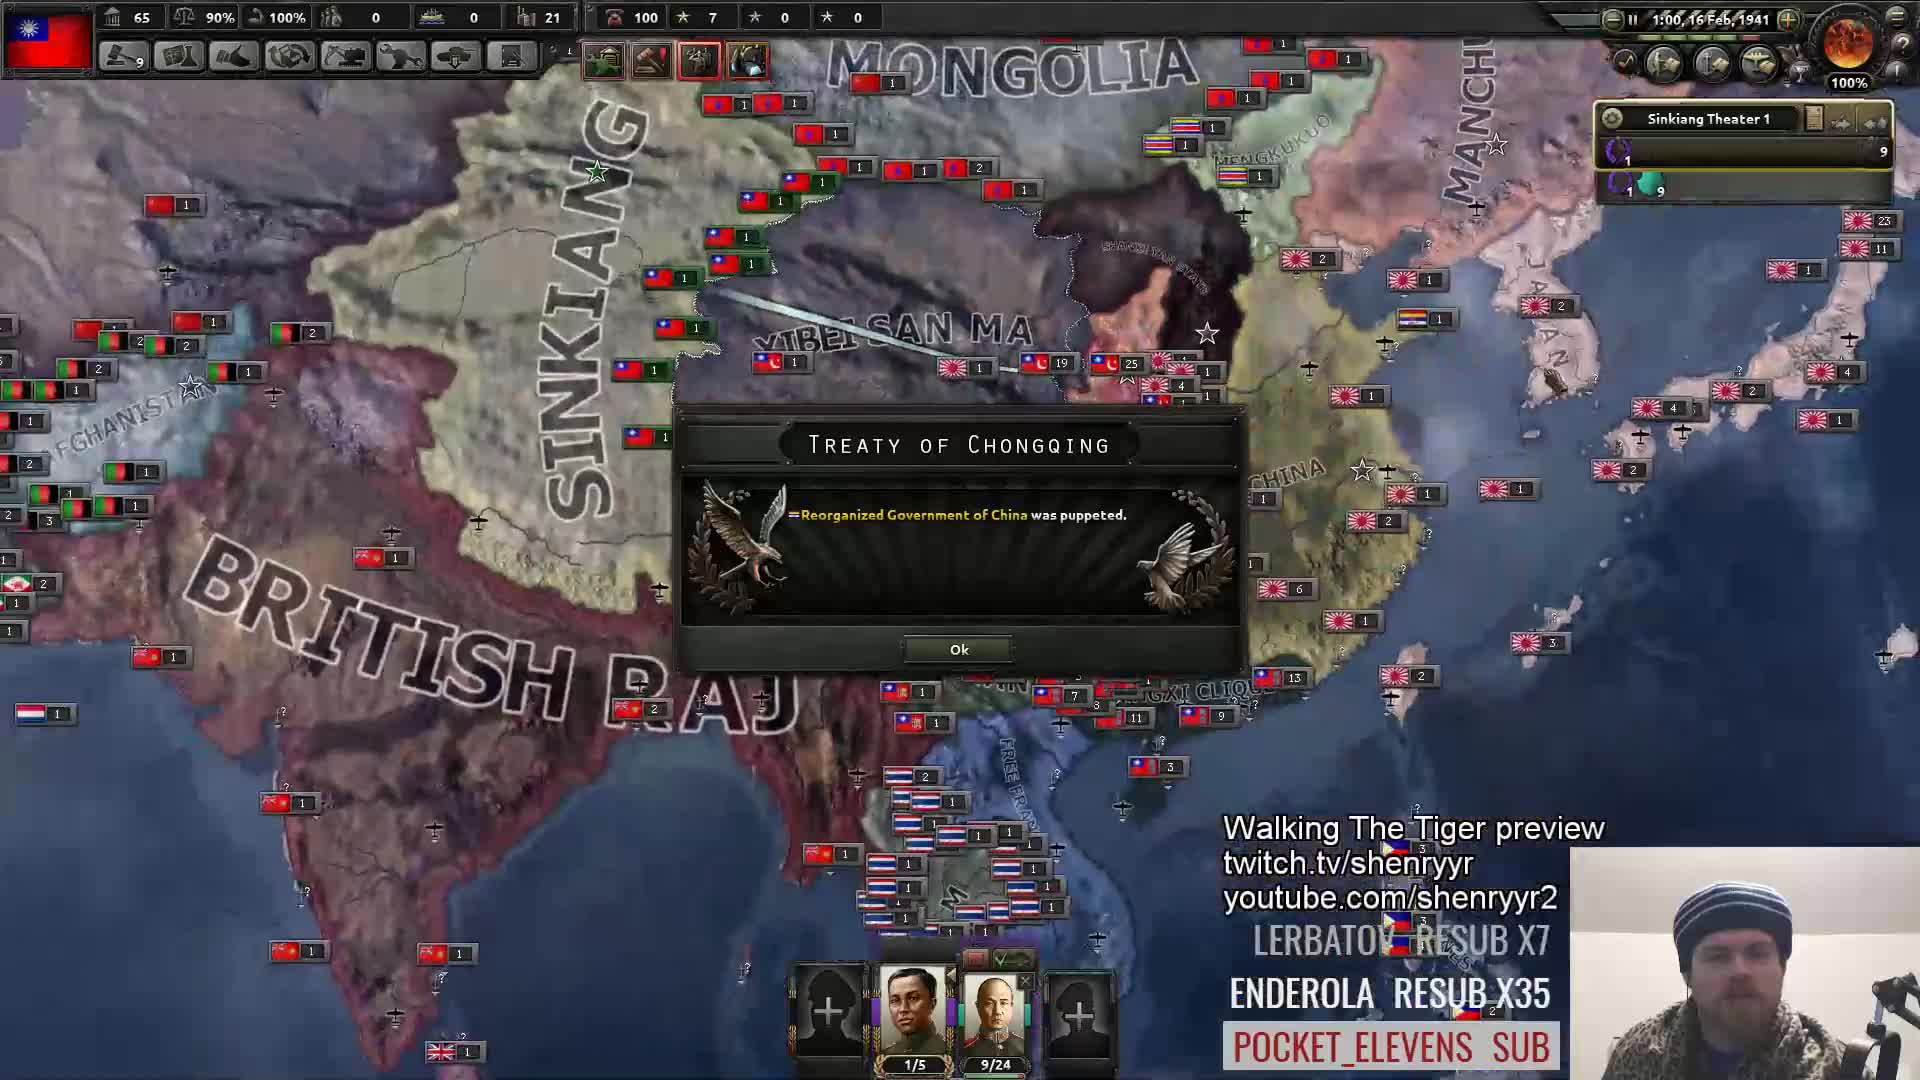 Waking the tiger might have a few bugs   : hoi4